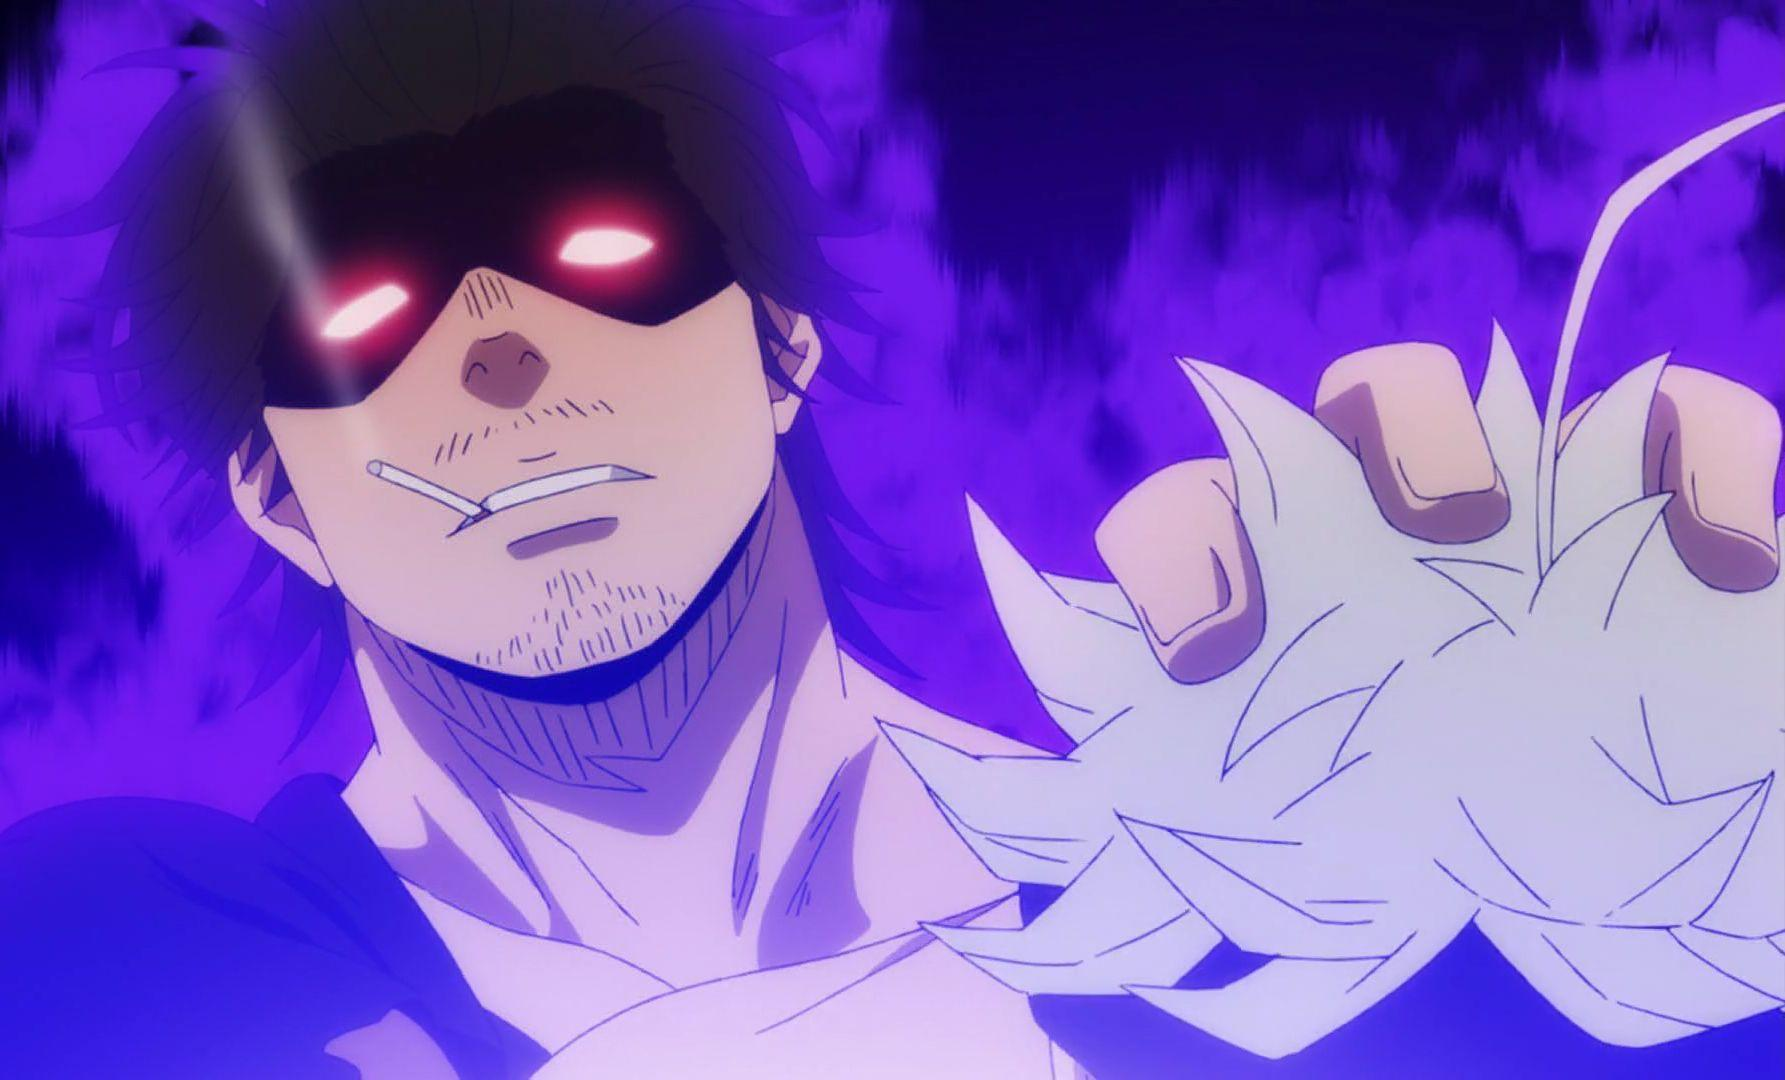 Black Clover Chapter 246 Release Date, Spoilers Yami kills Dante by Using Black Magic